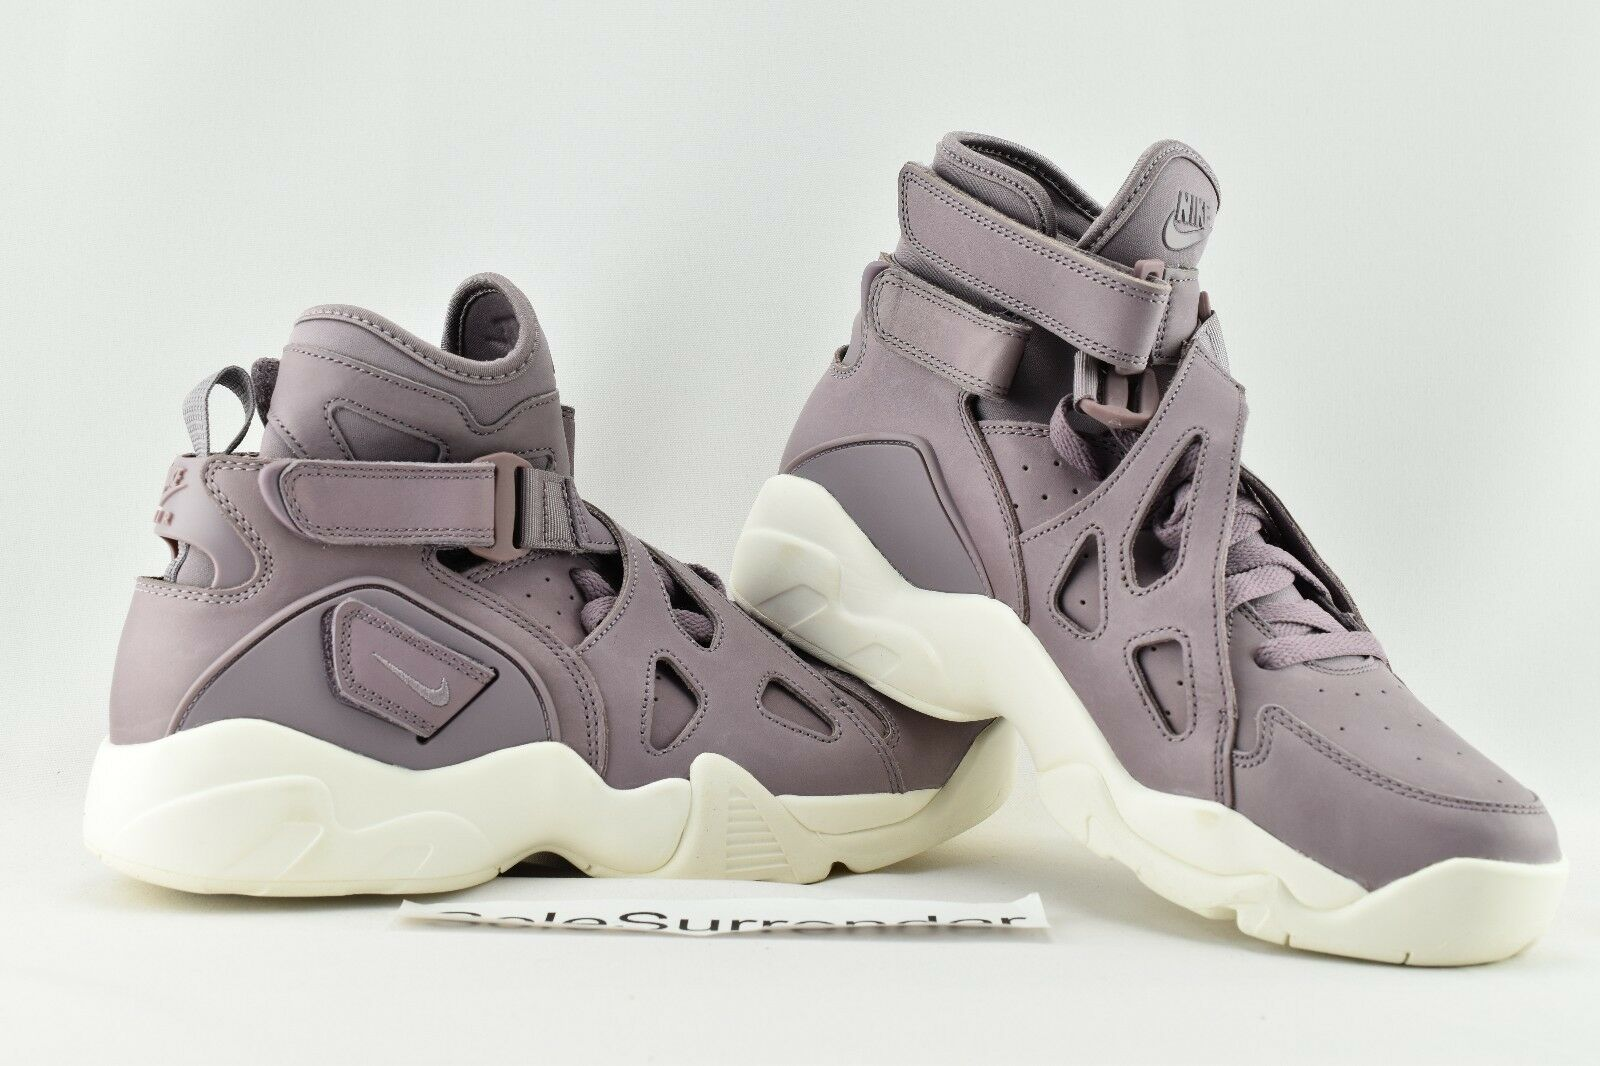 NikeLab Air Unlimited - SIZE 9.5 - Smoke NEW - 854318-551 Purple Smoke - Sail White Lab aebbd3